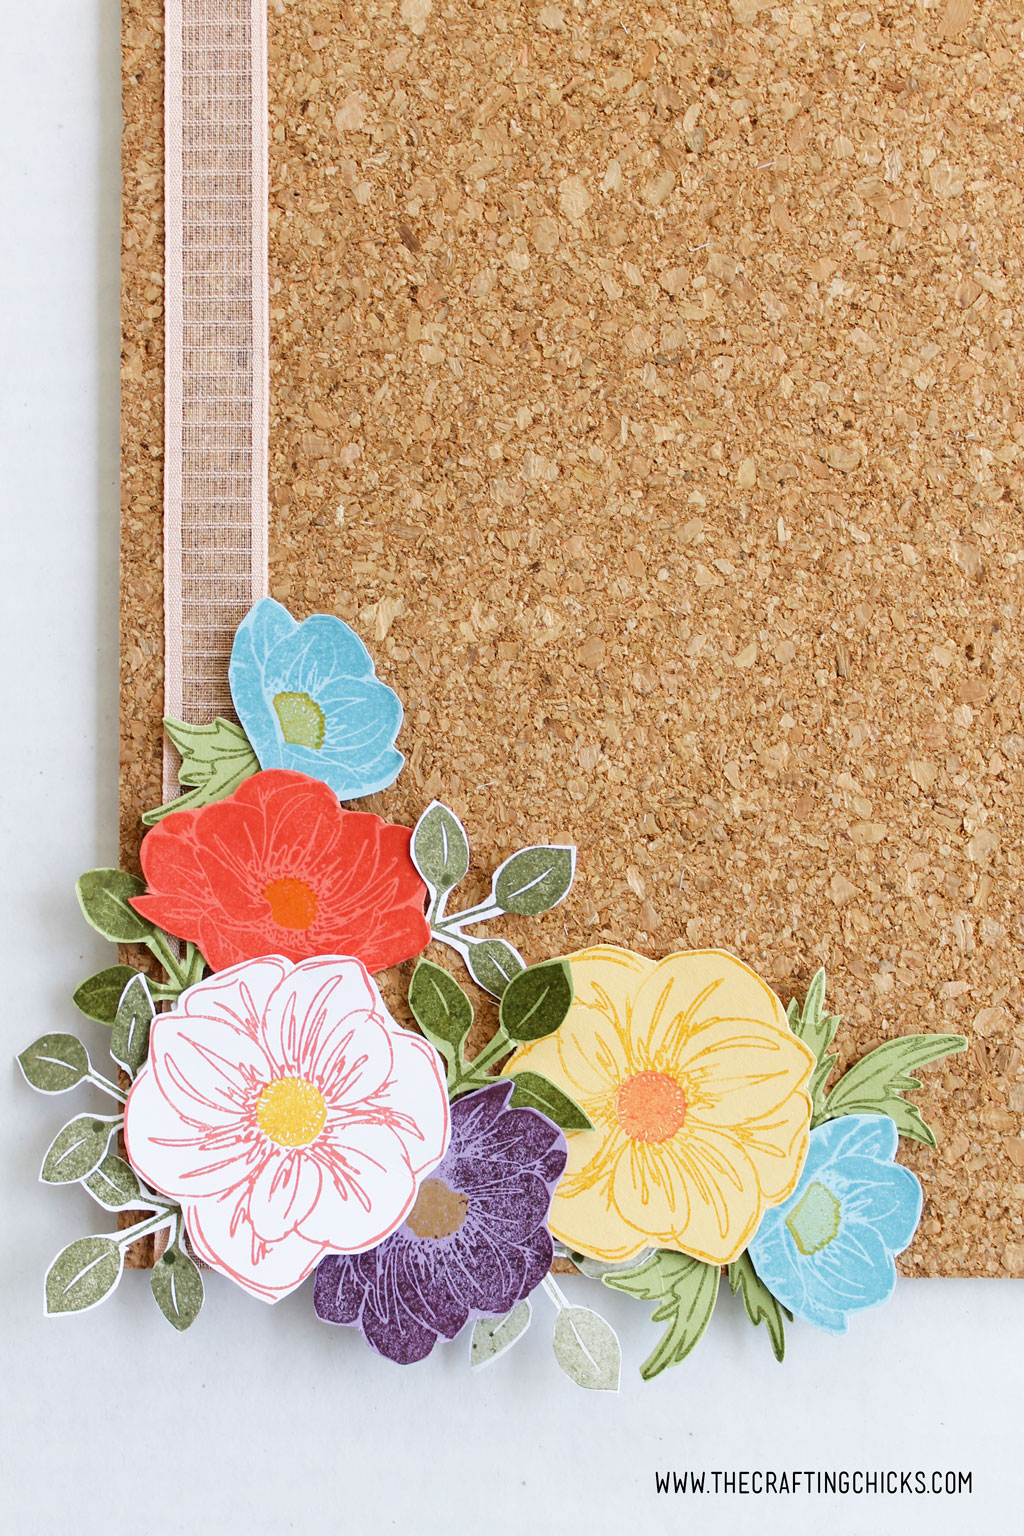 Layered stamped flowers on a cork board